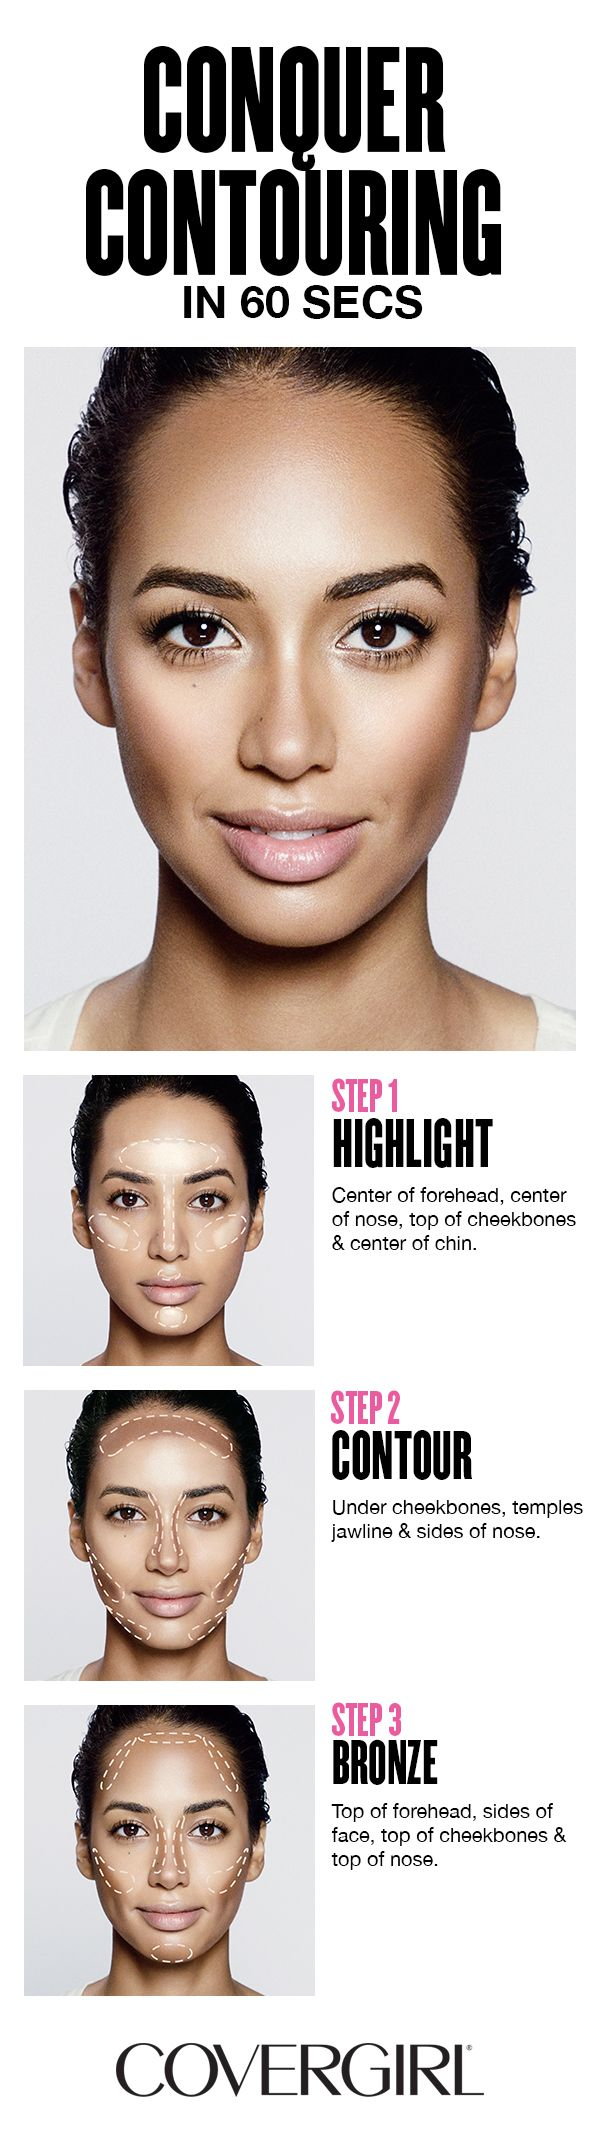 Contour your face in 60 seconds! Follow COVERGIRL'S step-by-step tutorial usin...